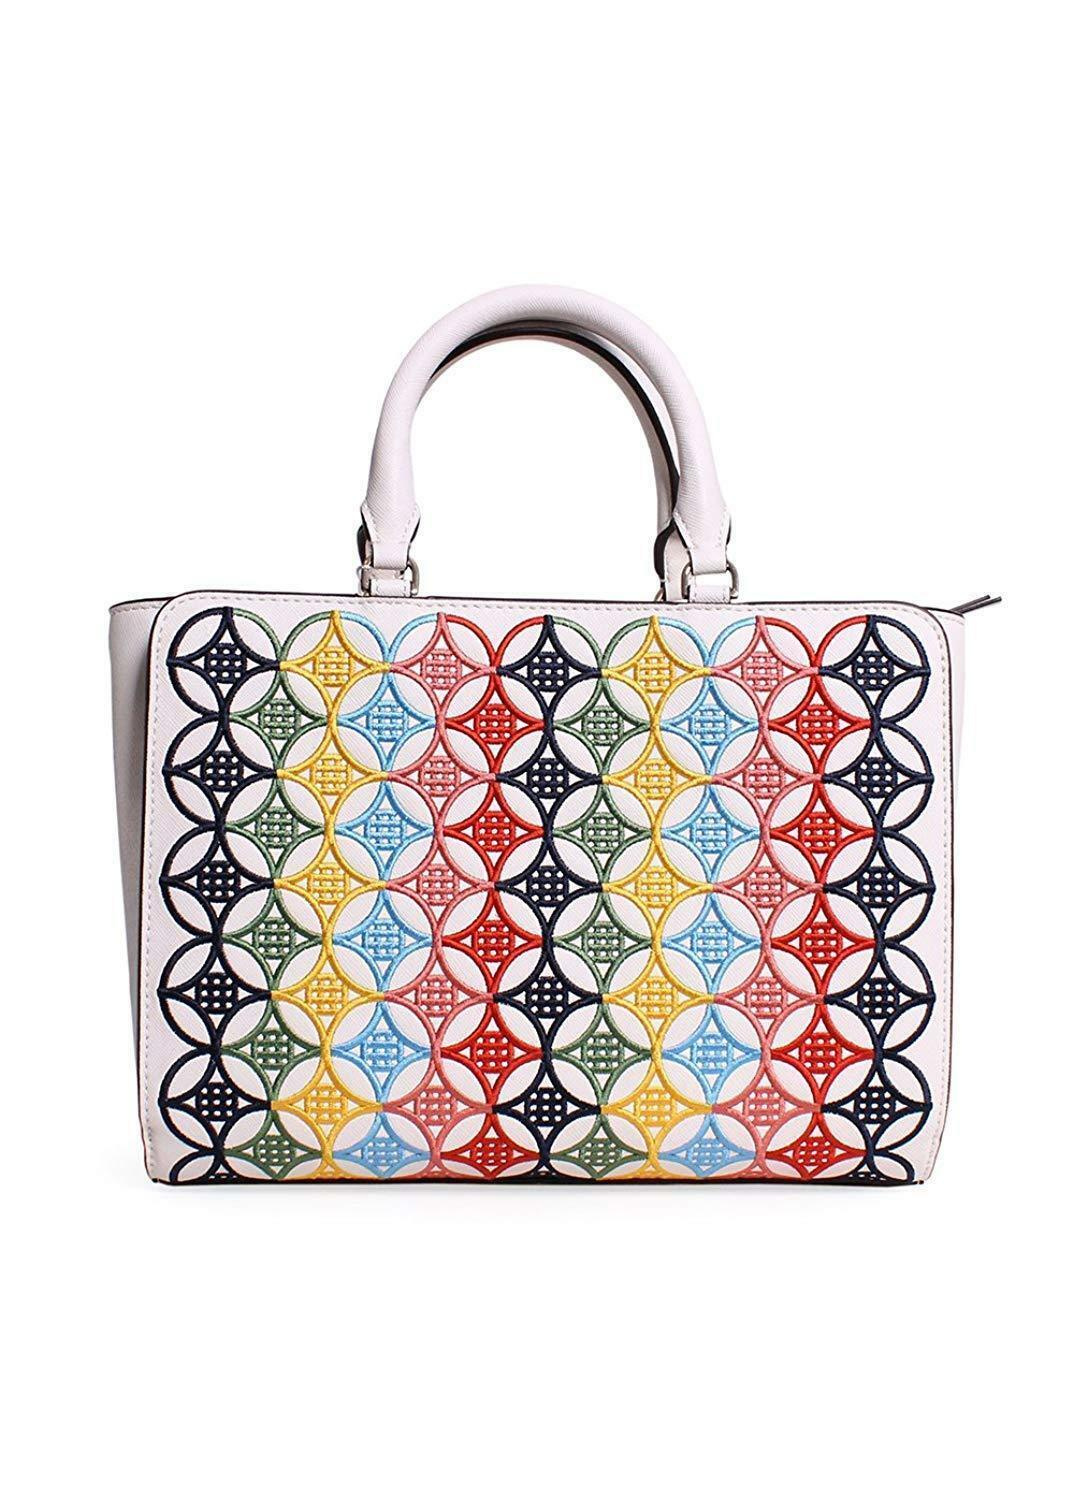 Tory Burch Robinson Embroidered Small Zip Tote in New Ivory Multi